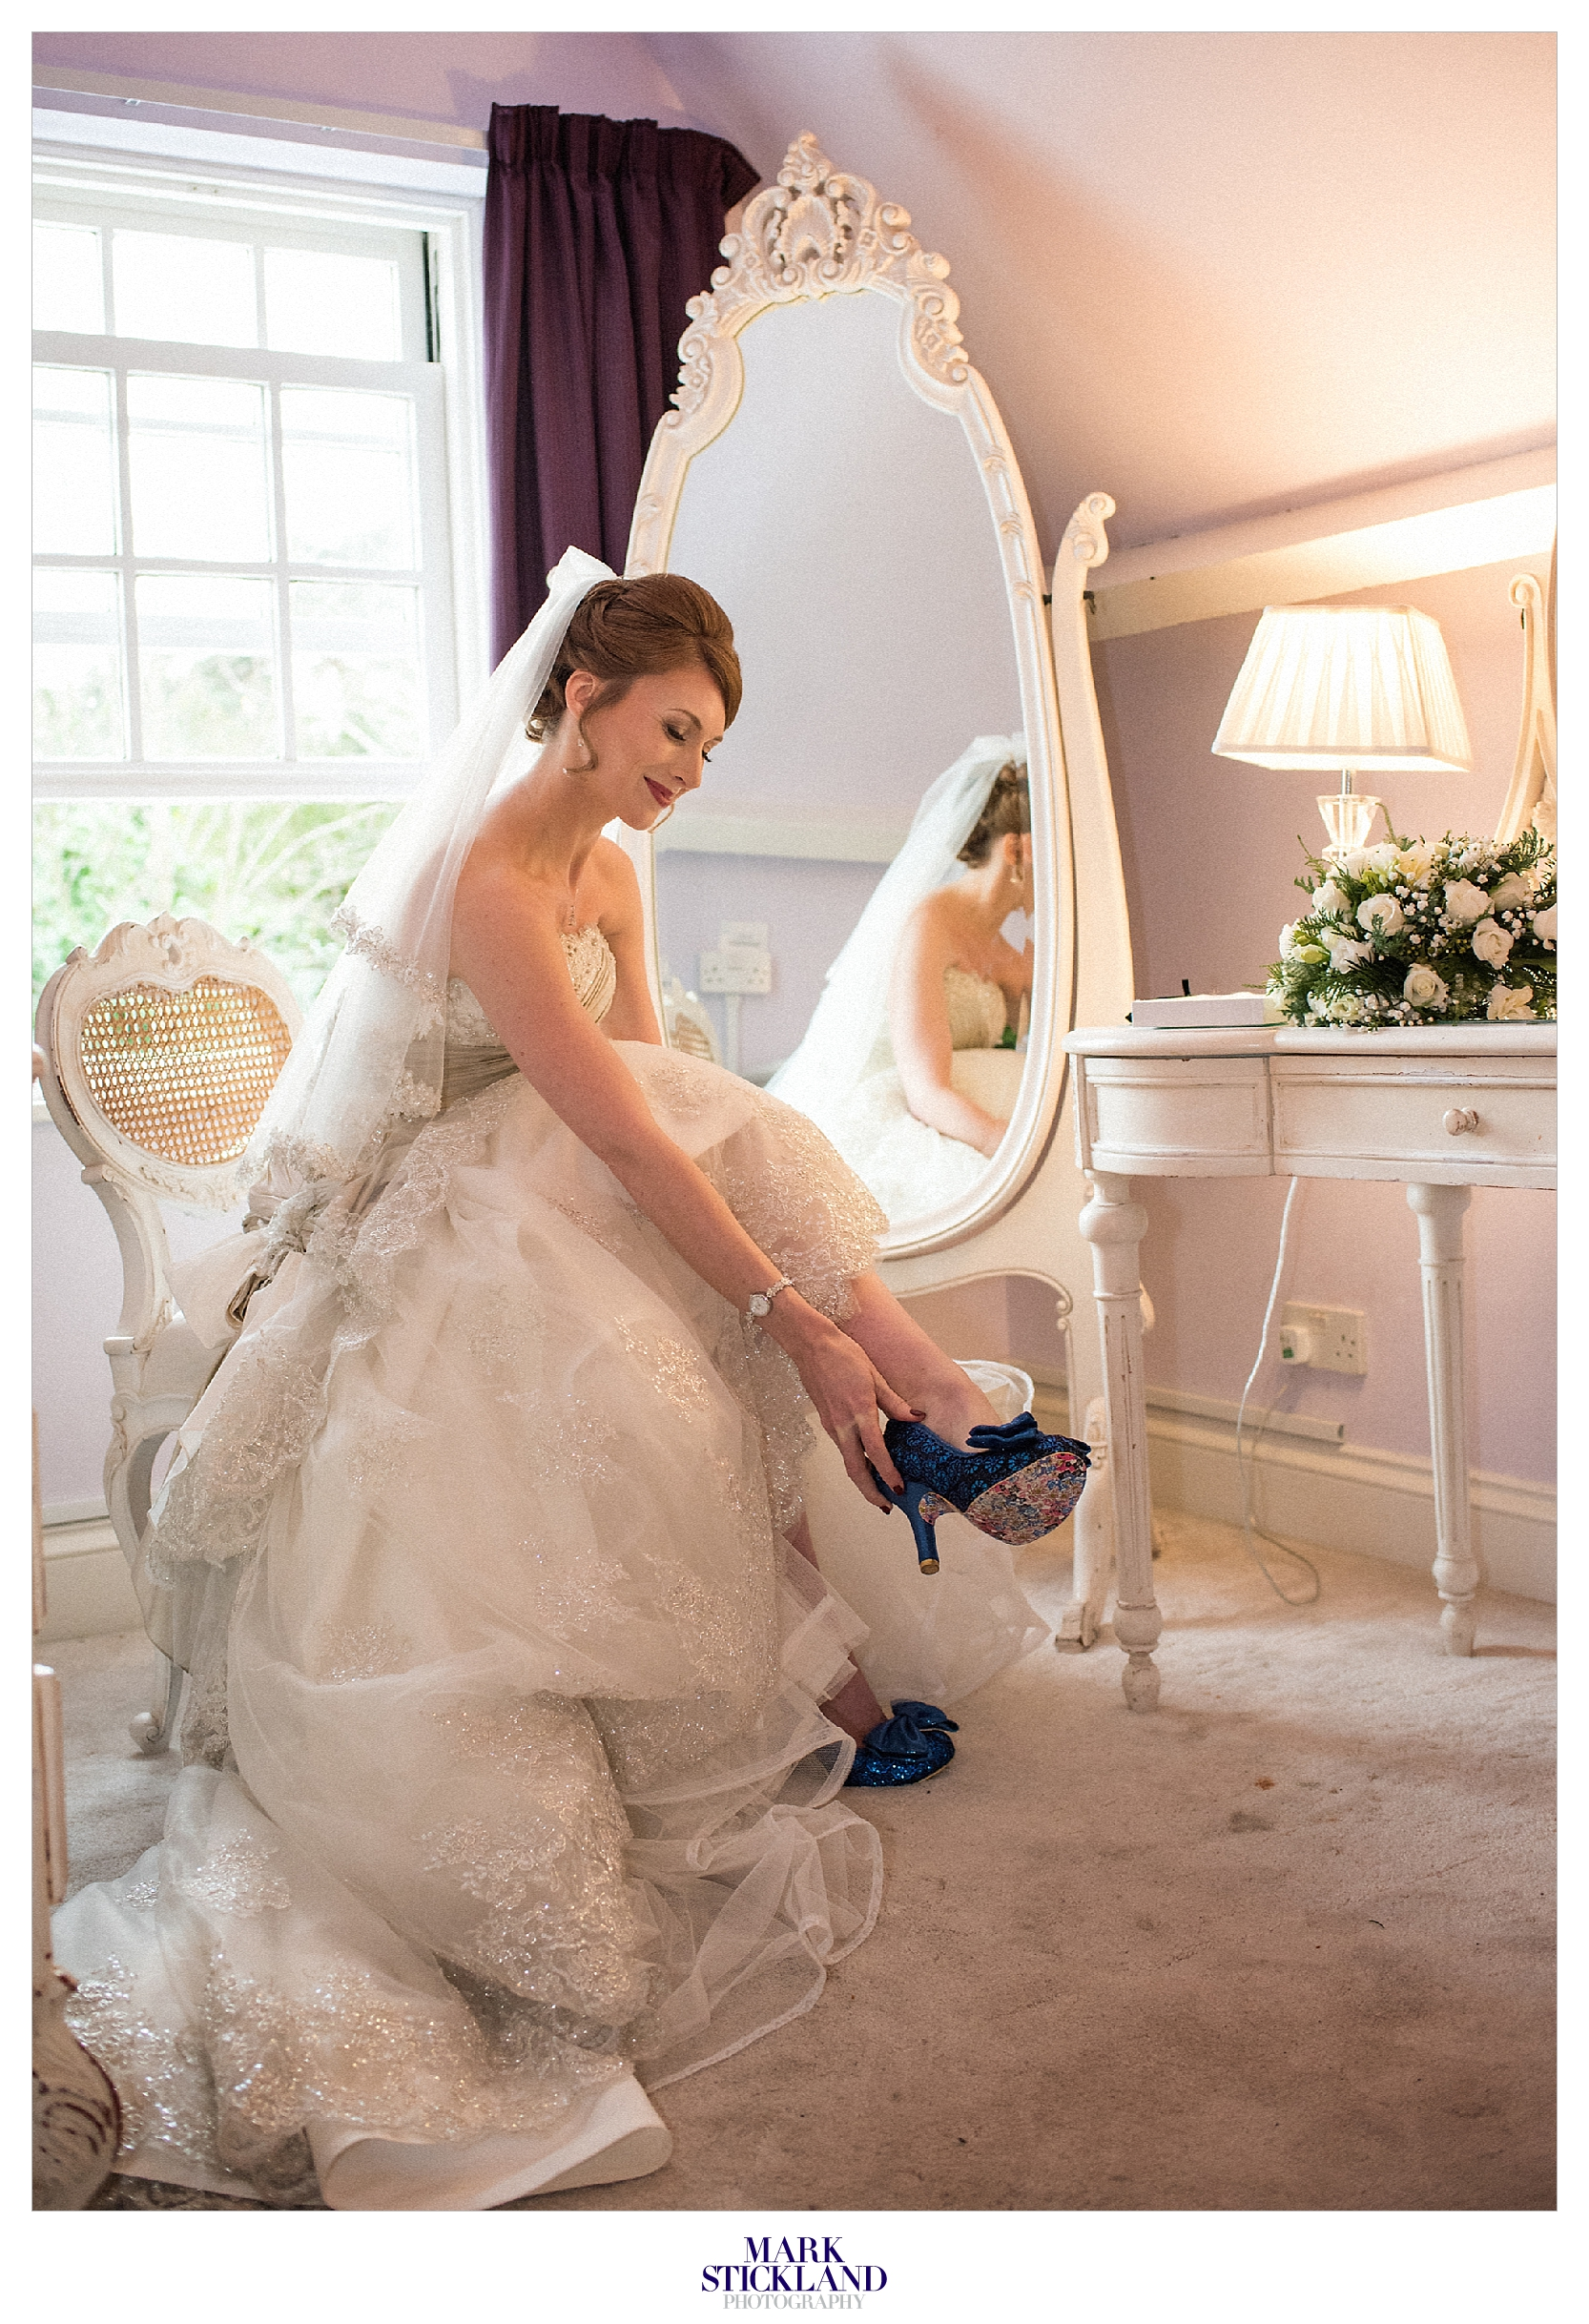 langtry manor hotel_wedding_bournemouth_dorset_mark stickland photography._0004